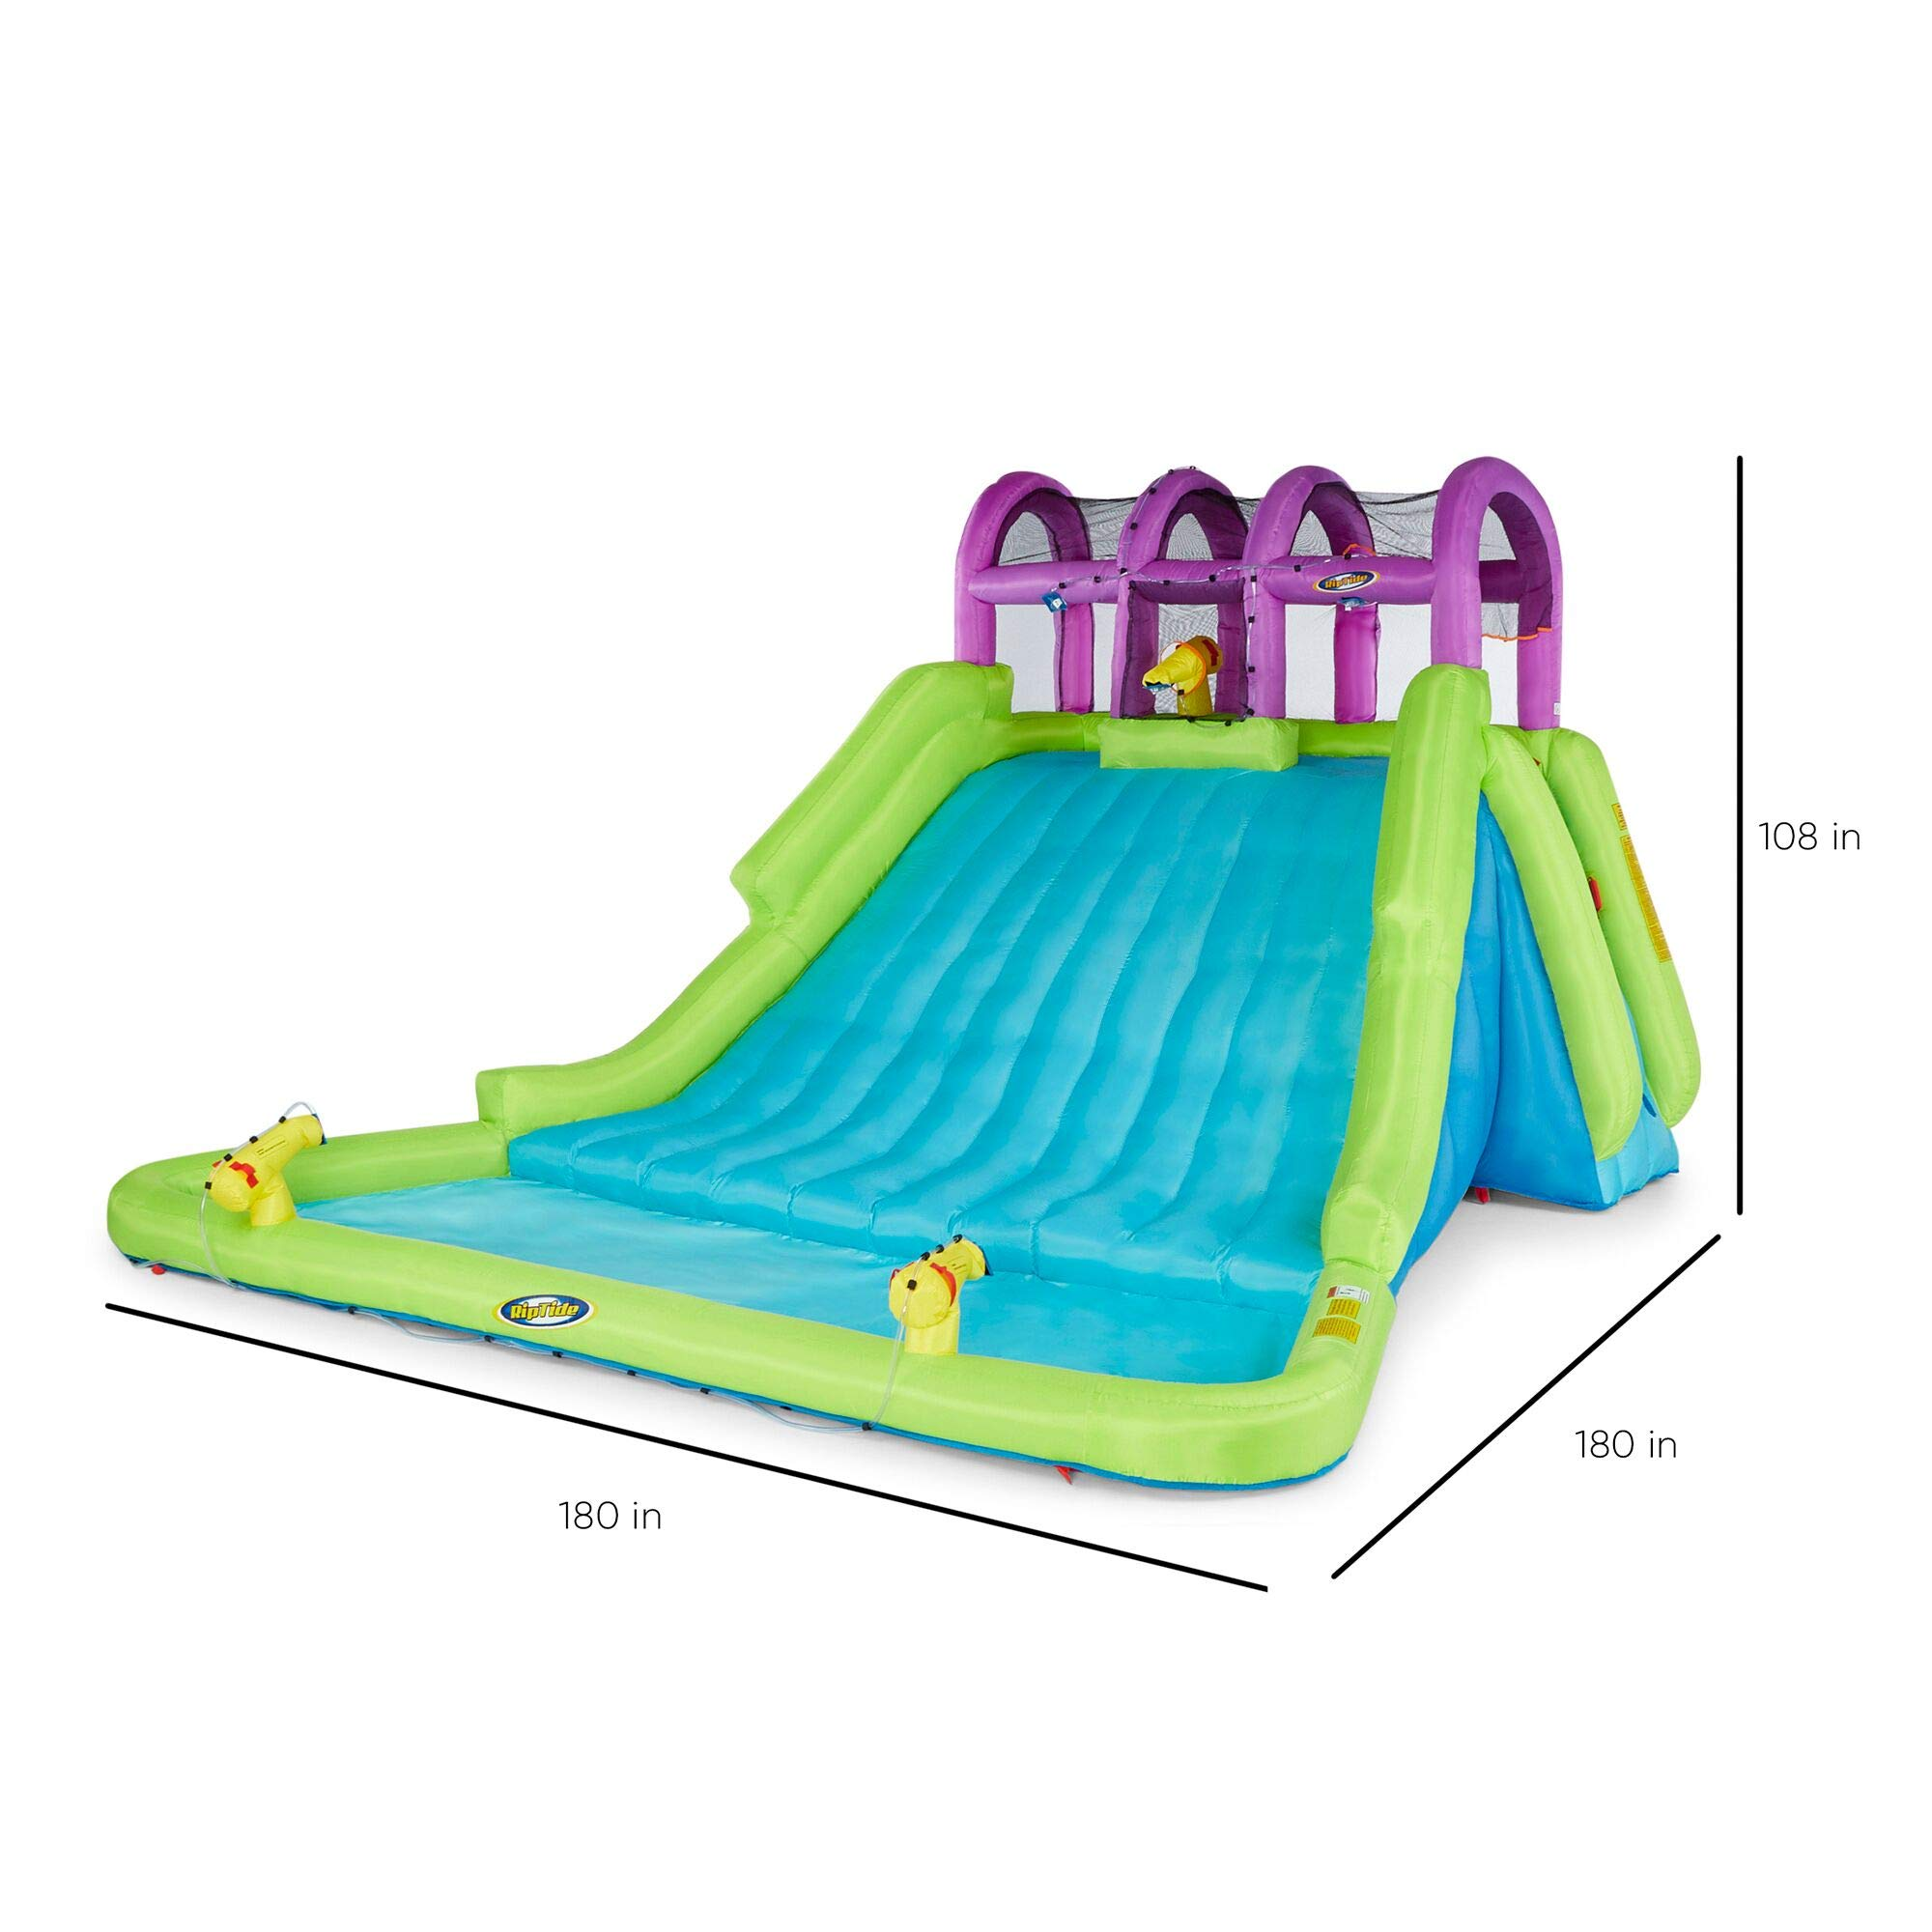 Kahuna Mega Blast Inflatable Backyard Kiddie Pool and Slide Water Park by Kahuna (Image #2)